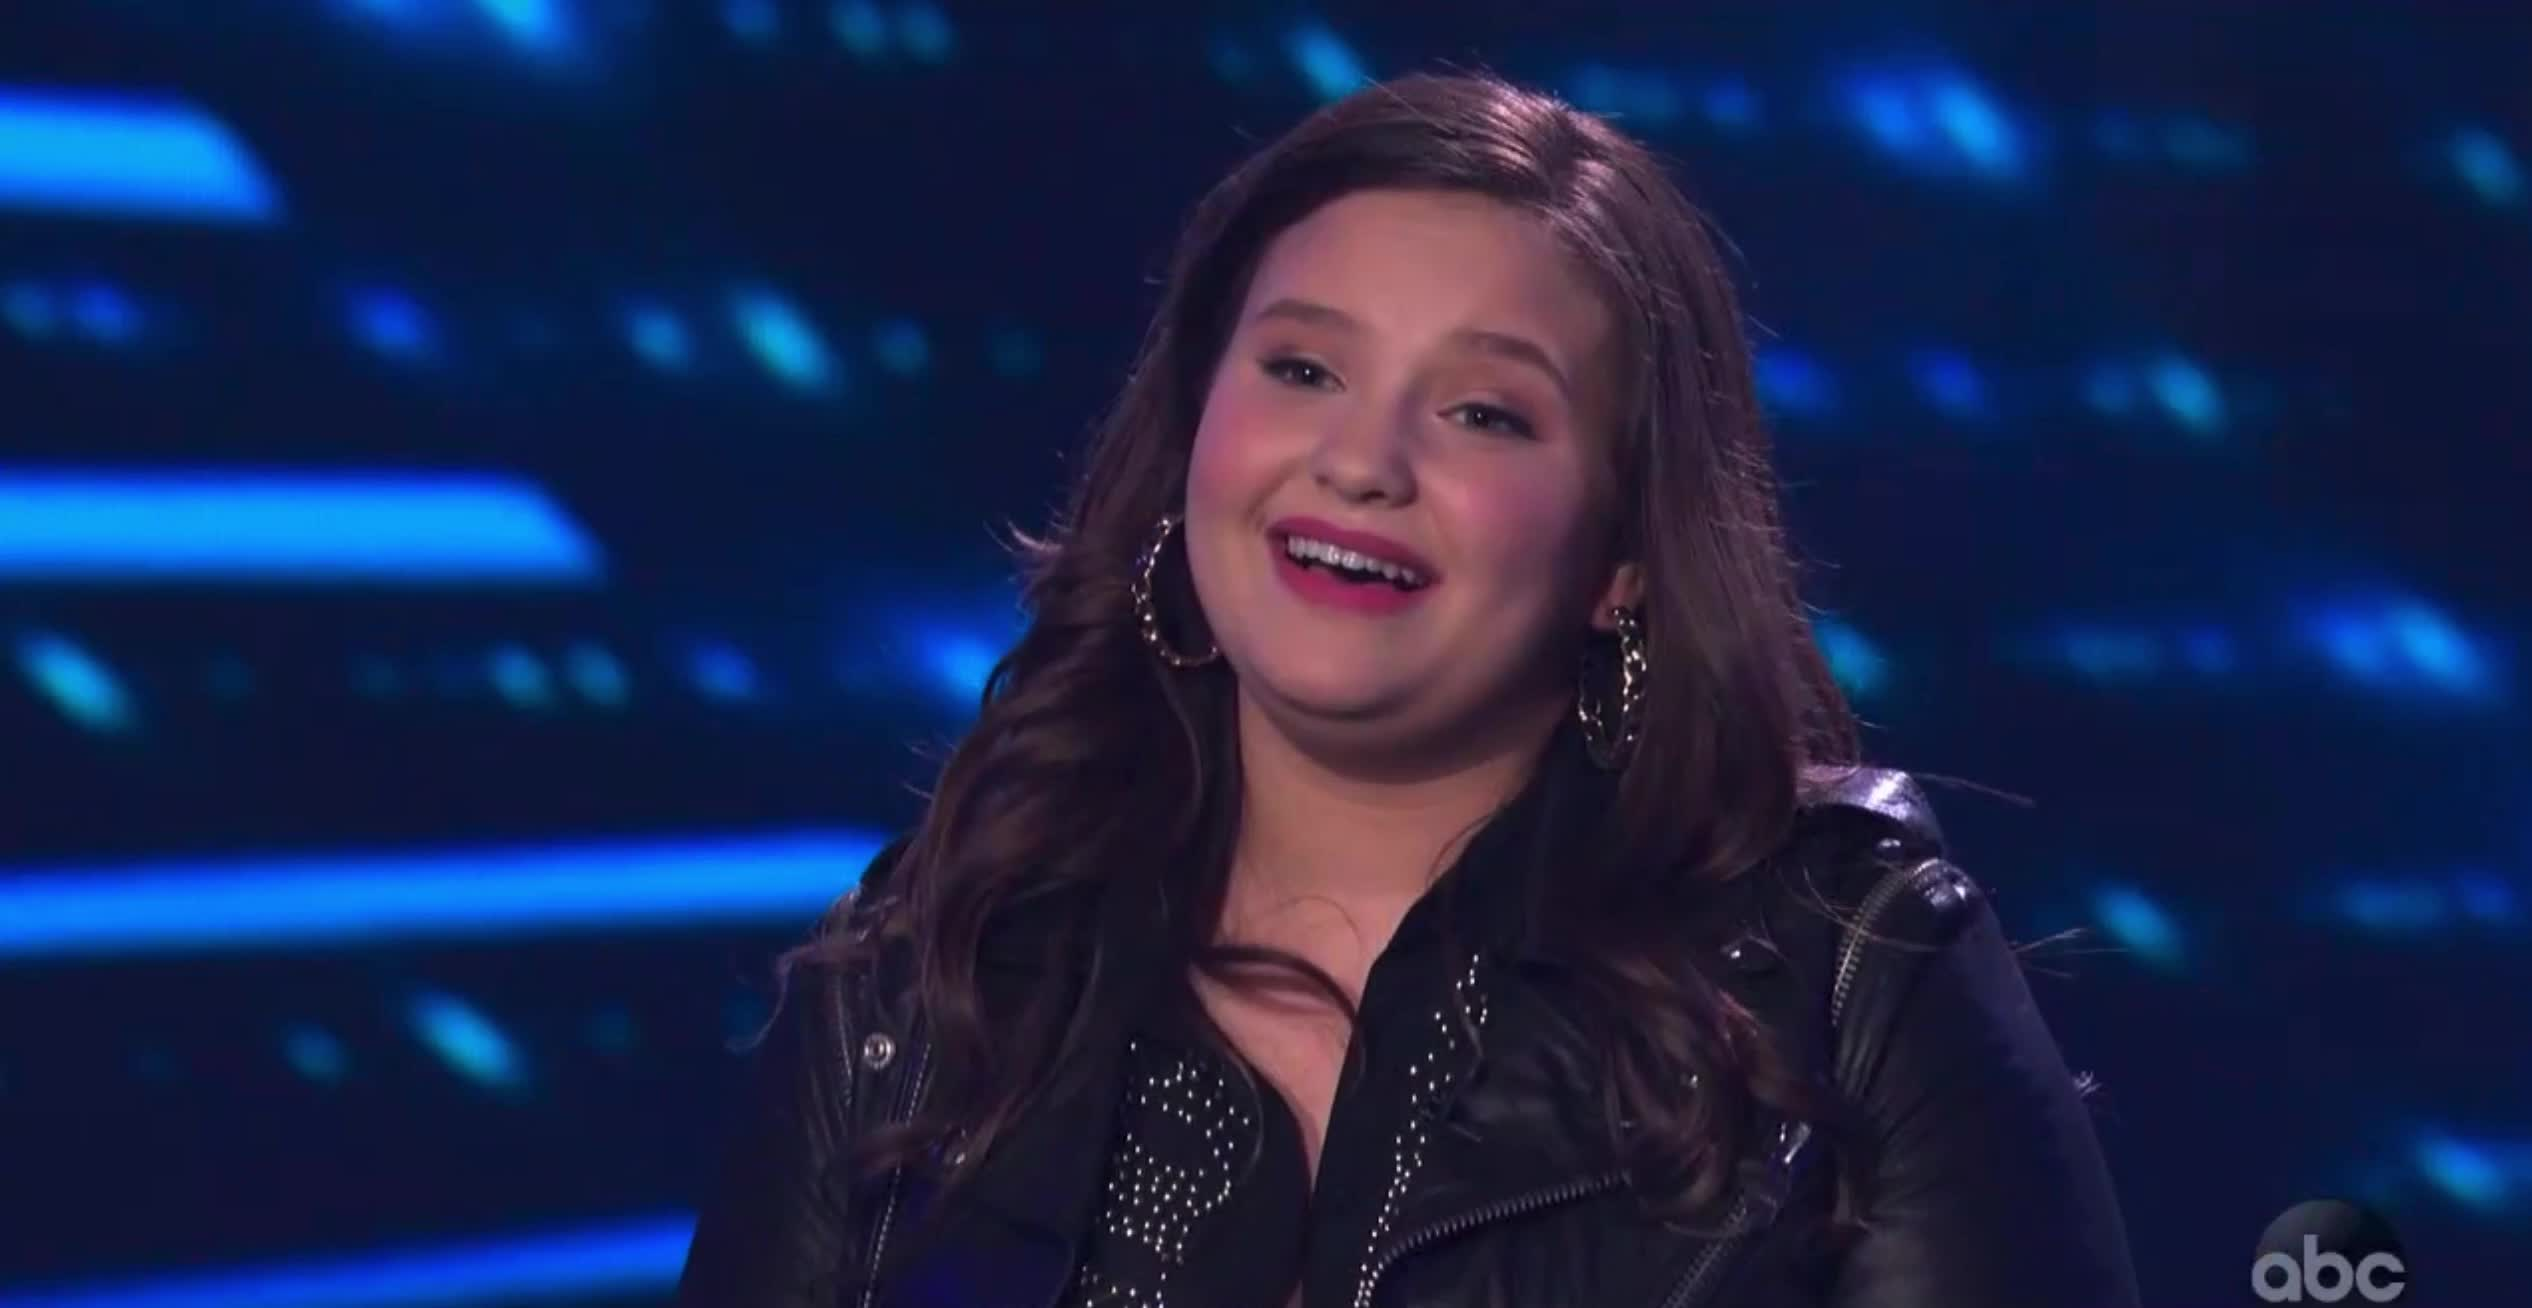 american idol, american idol season 17, americanidol, katy perry, lionel richie, luke bryan, madison vandenburg, ryan seacrest, season 17, thank you, thanks, American Idol Madison Thanks Katy GIFs